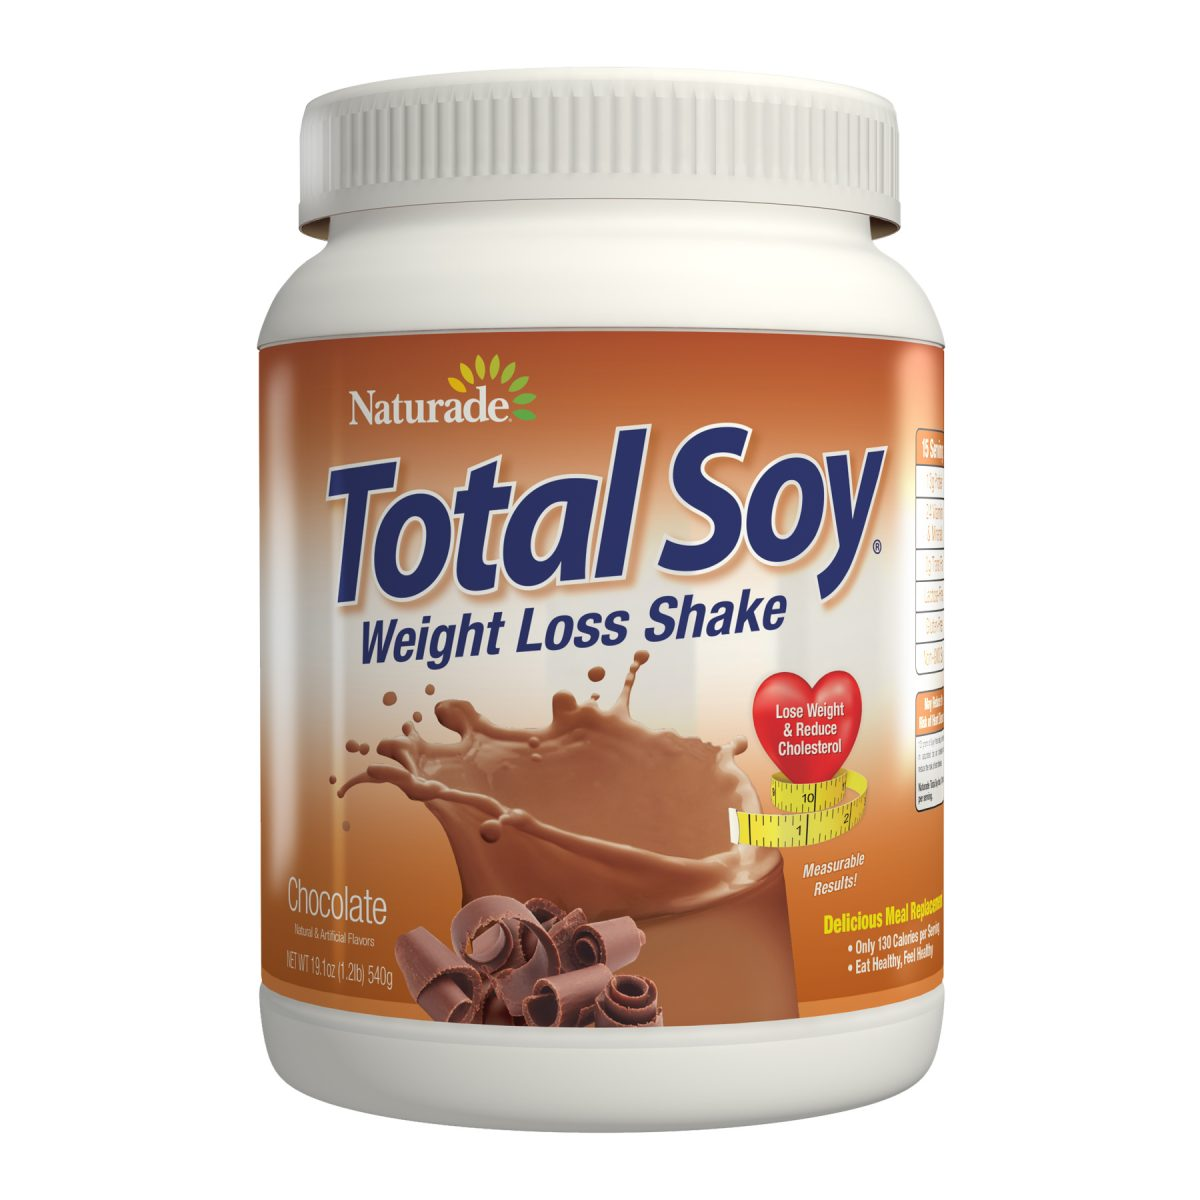 Weight Loss Shake Meal Replacement - Total Soy